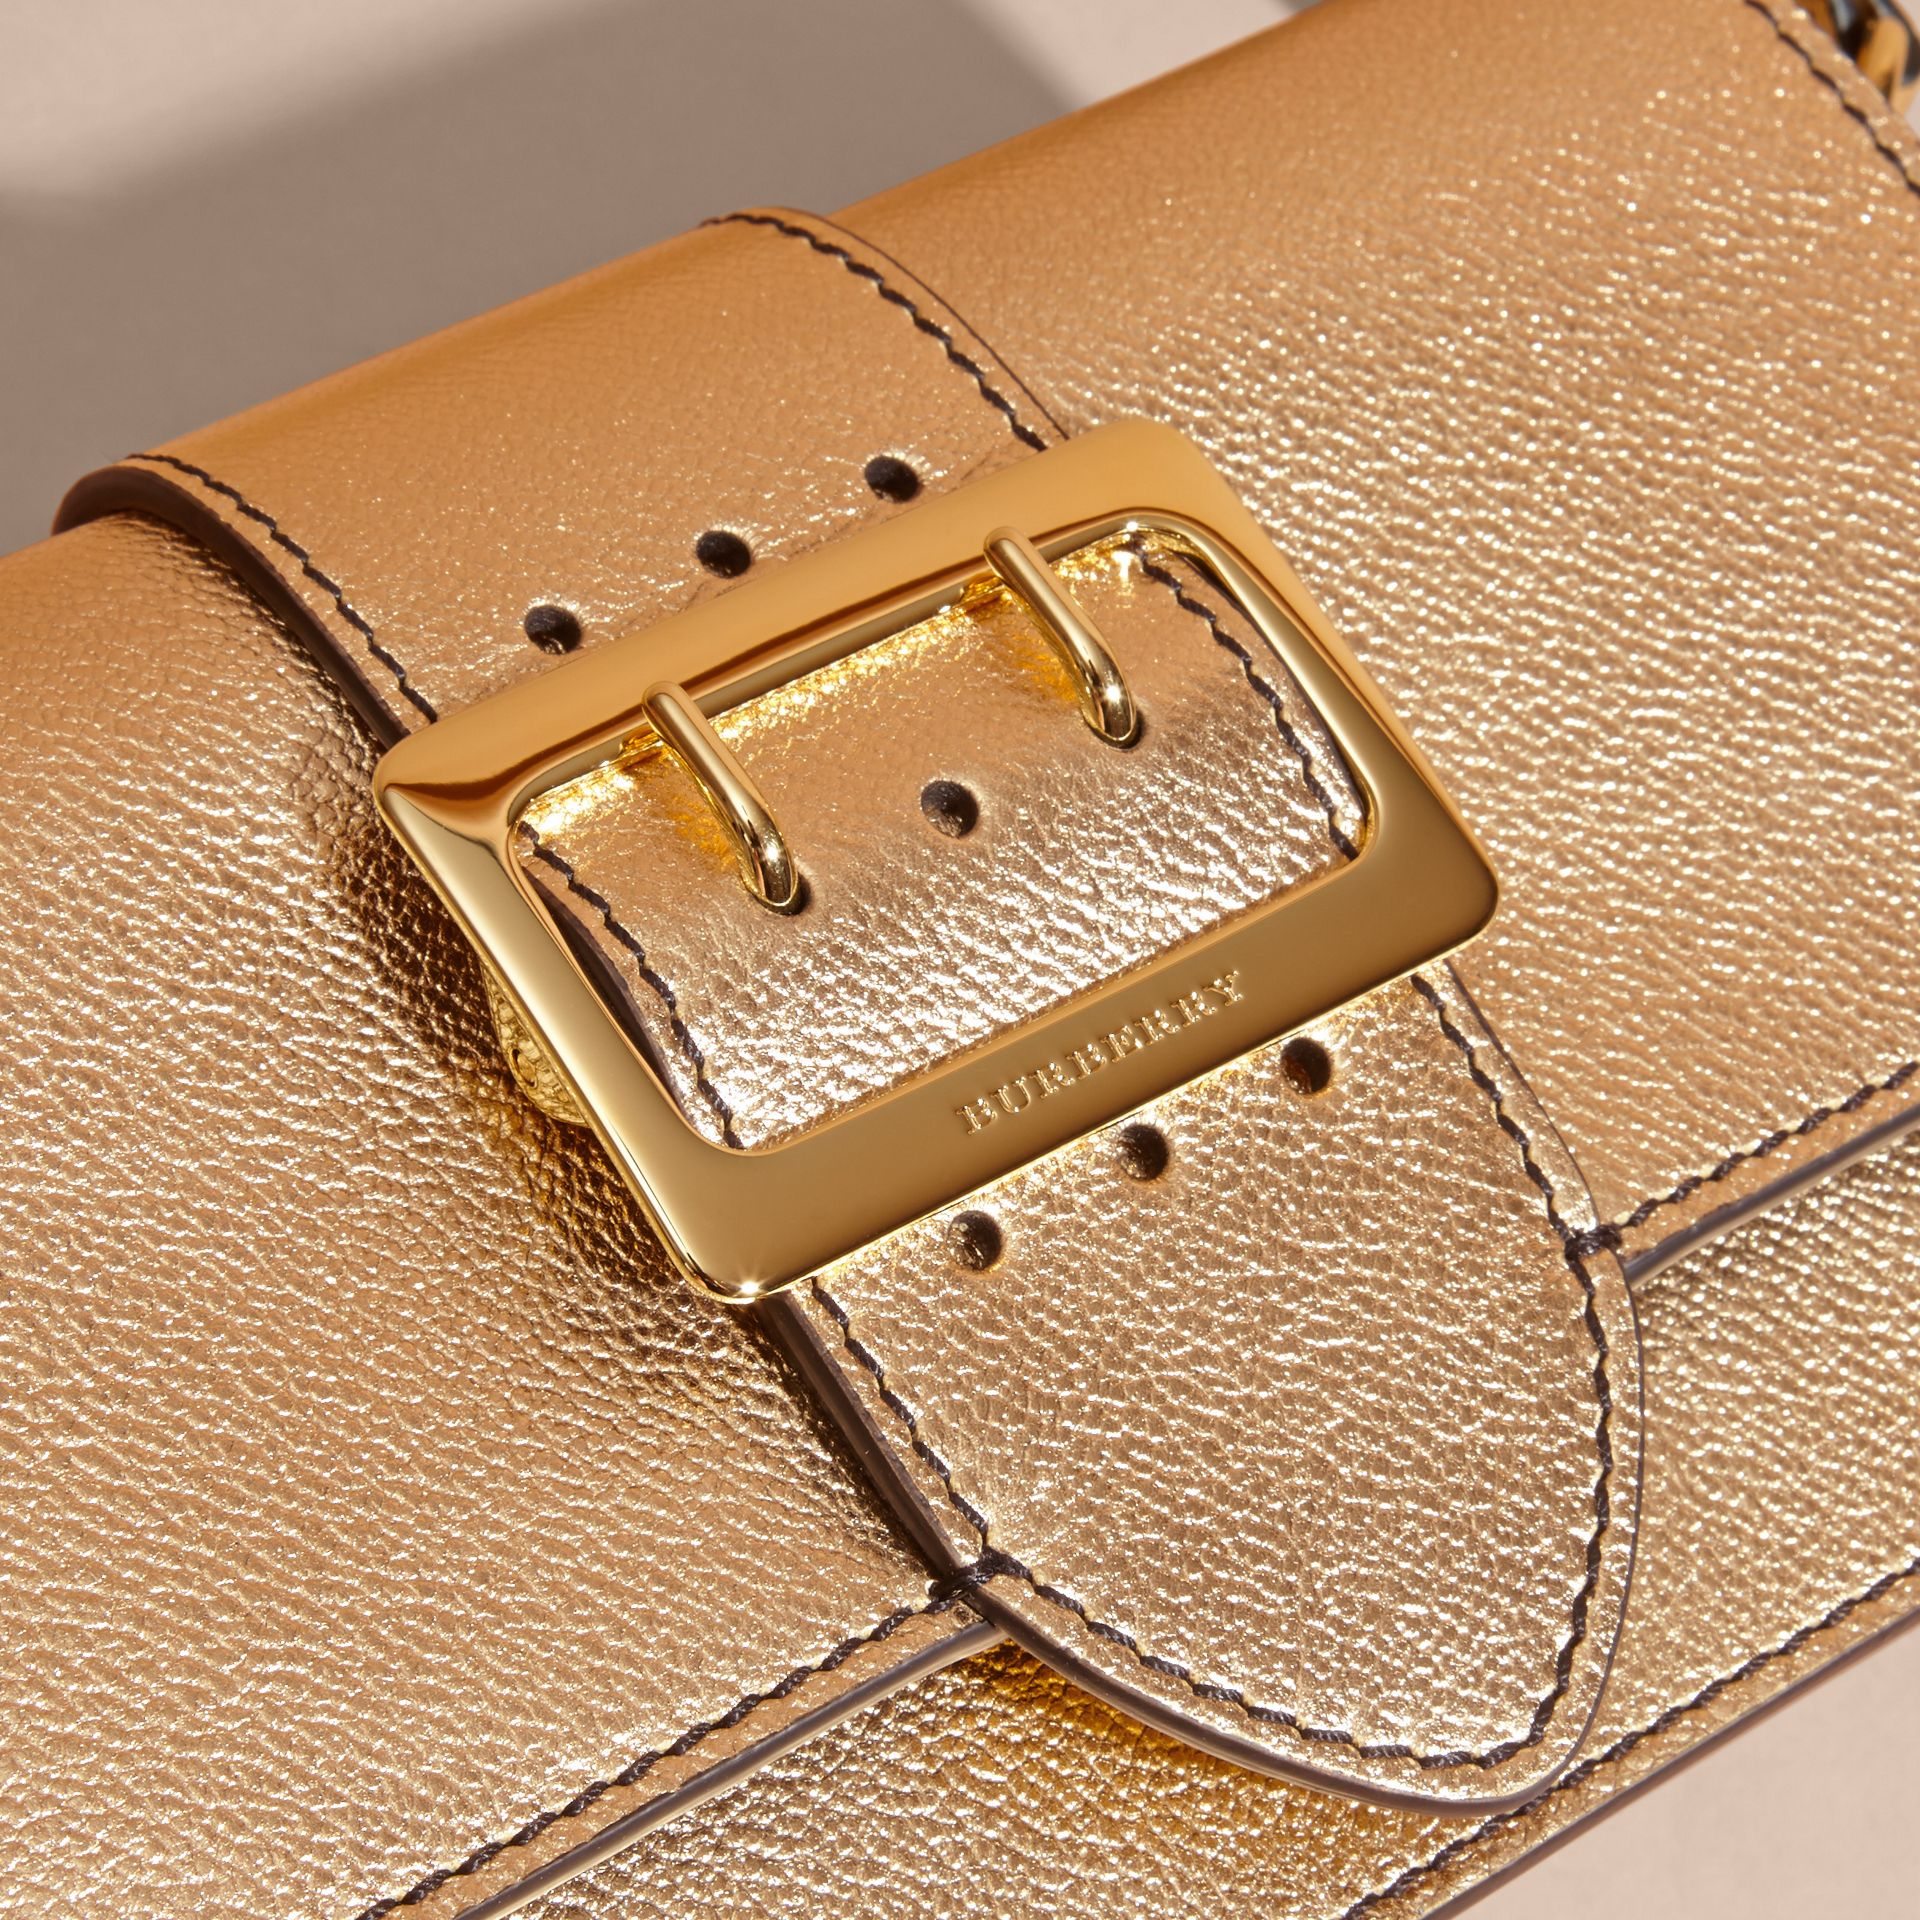 Goldfarben The Medium Buckle Bag aus Metallic-Leder - Galerie-Bild 2